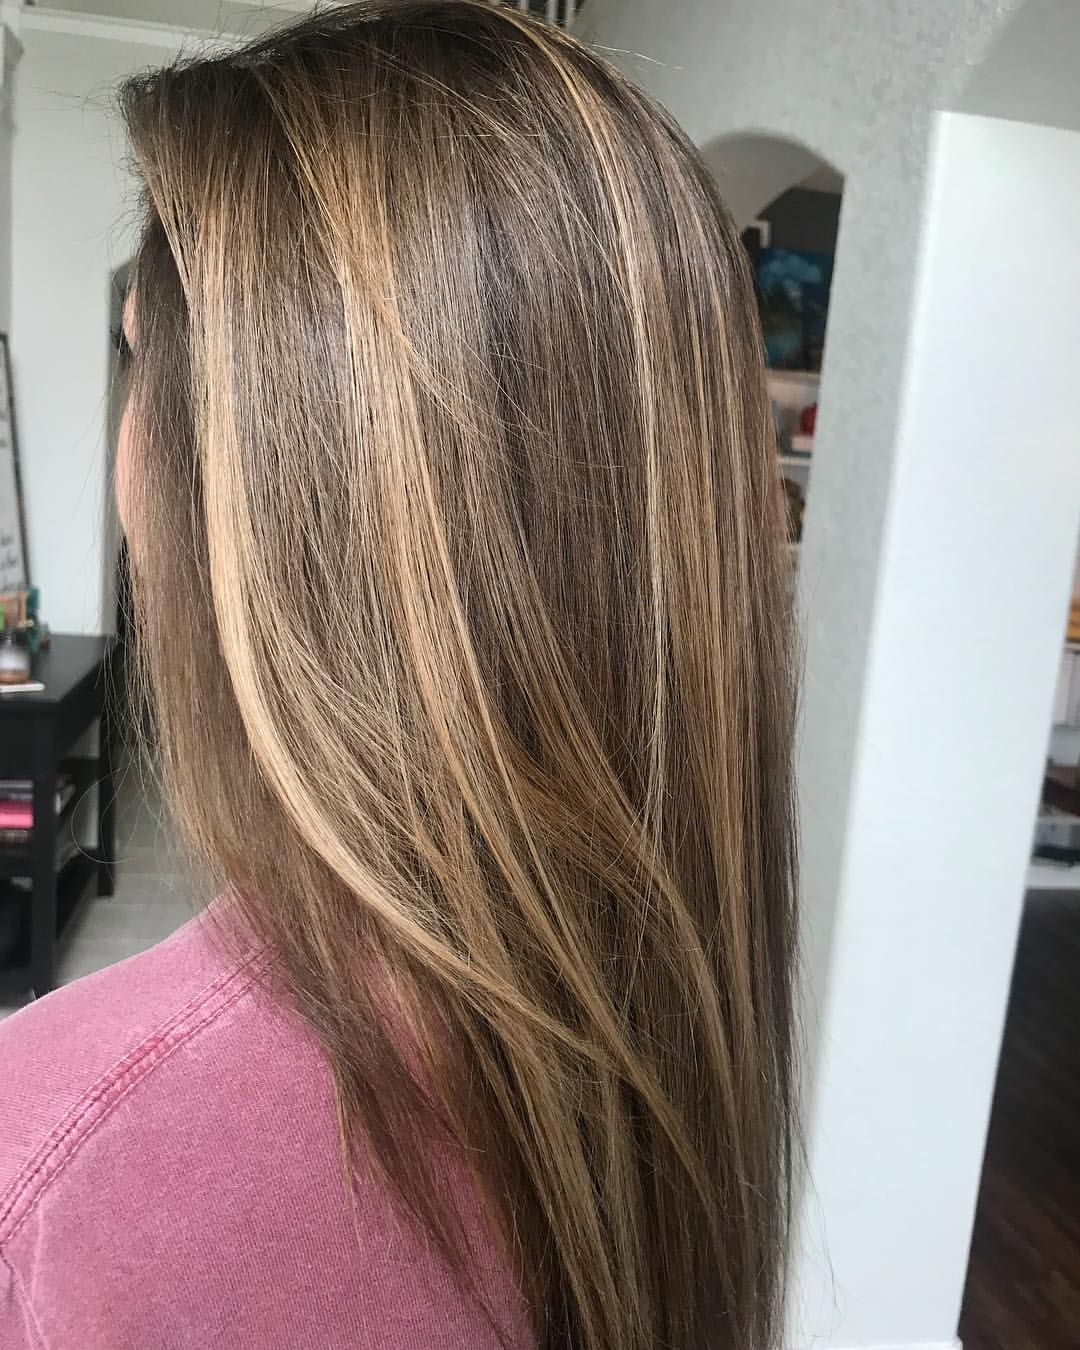 Haircolorbalayage Balayage Straight Hair Hair Styles Sunkissed Hair Brunette